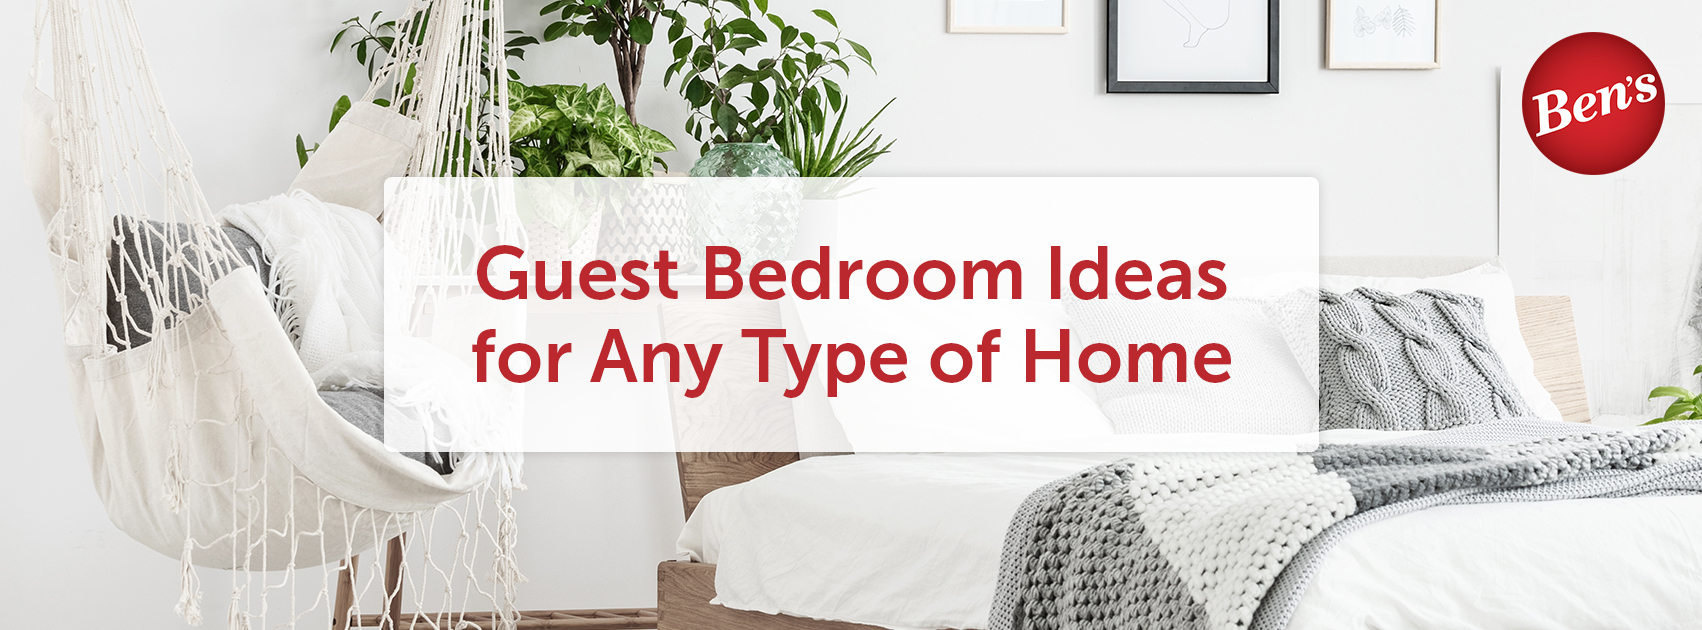 Guest Bedroom Ideas for Any Type of Home